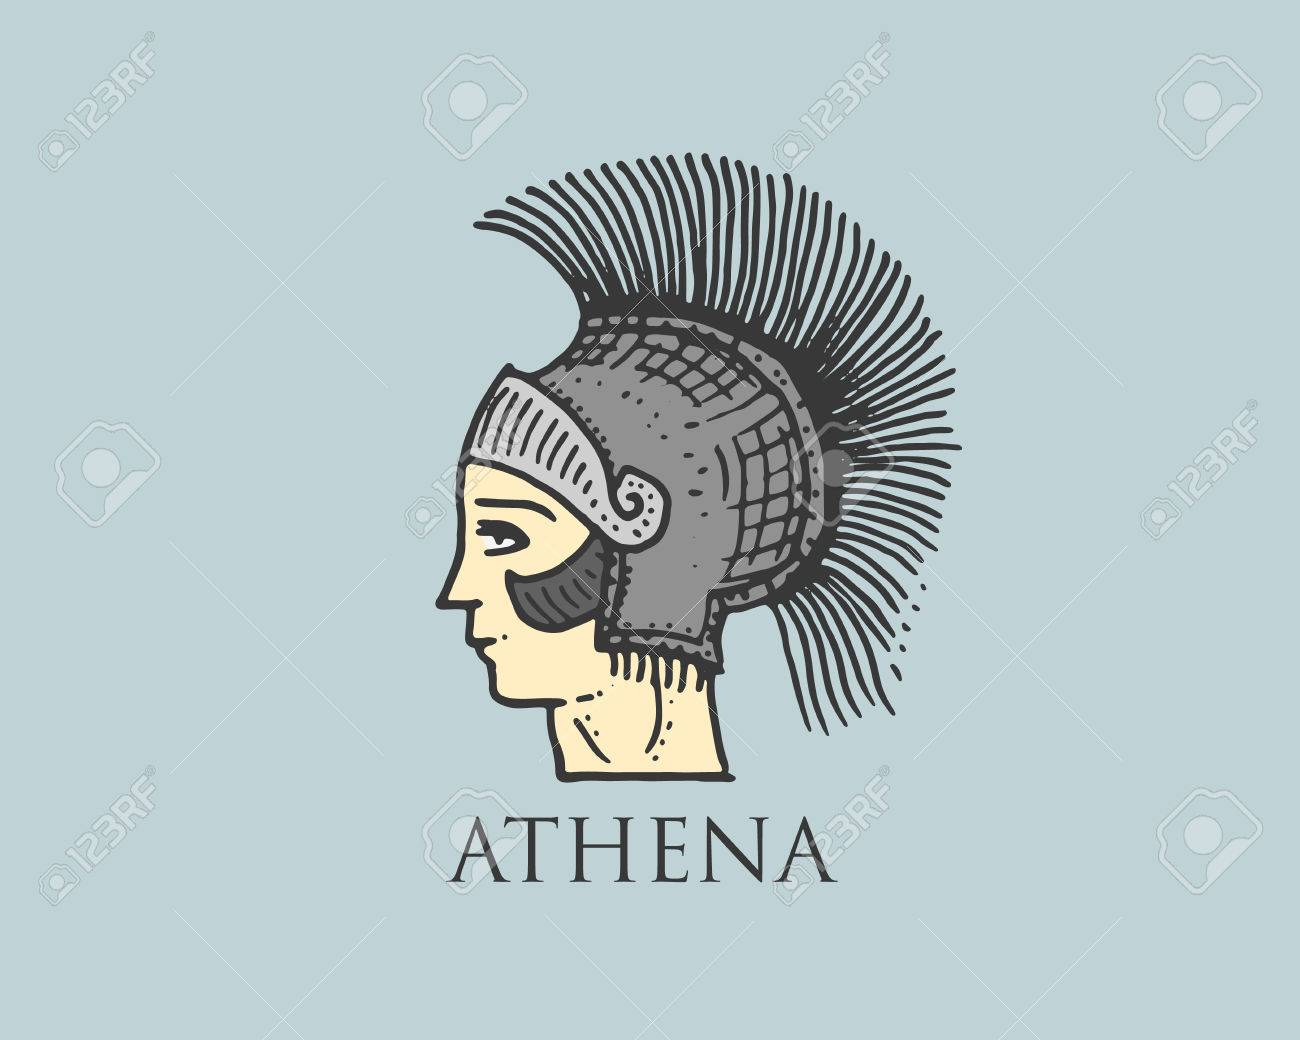 Athena Greek Goddess Symbols Topsimages